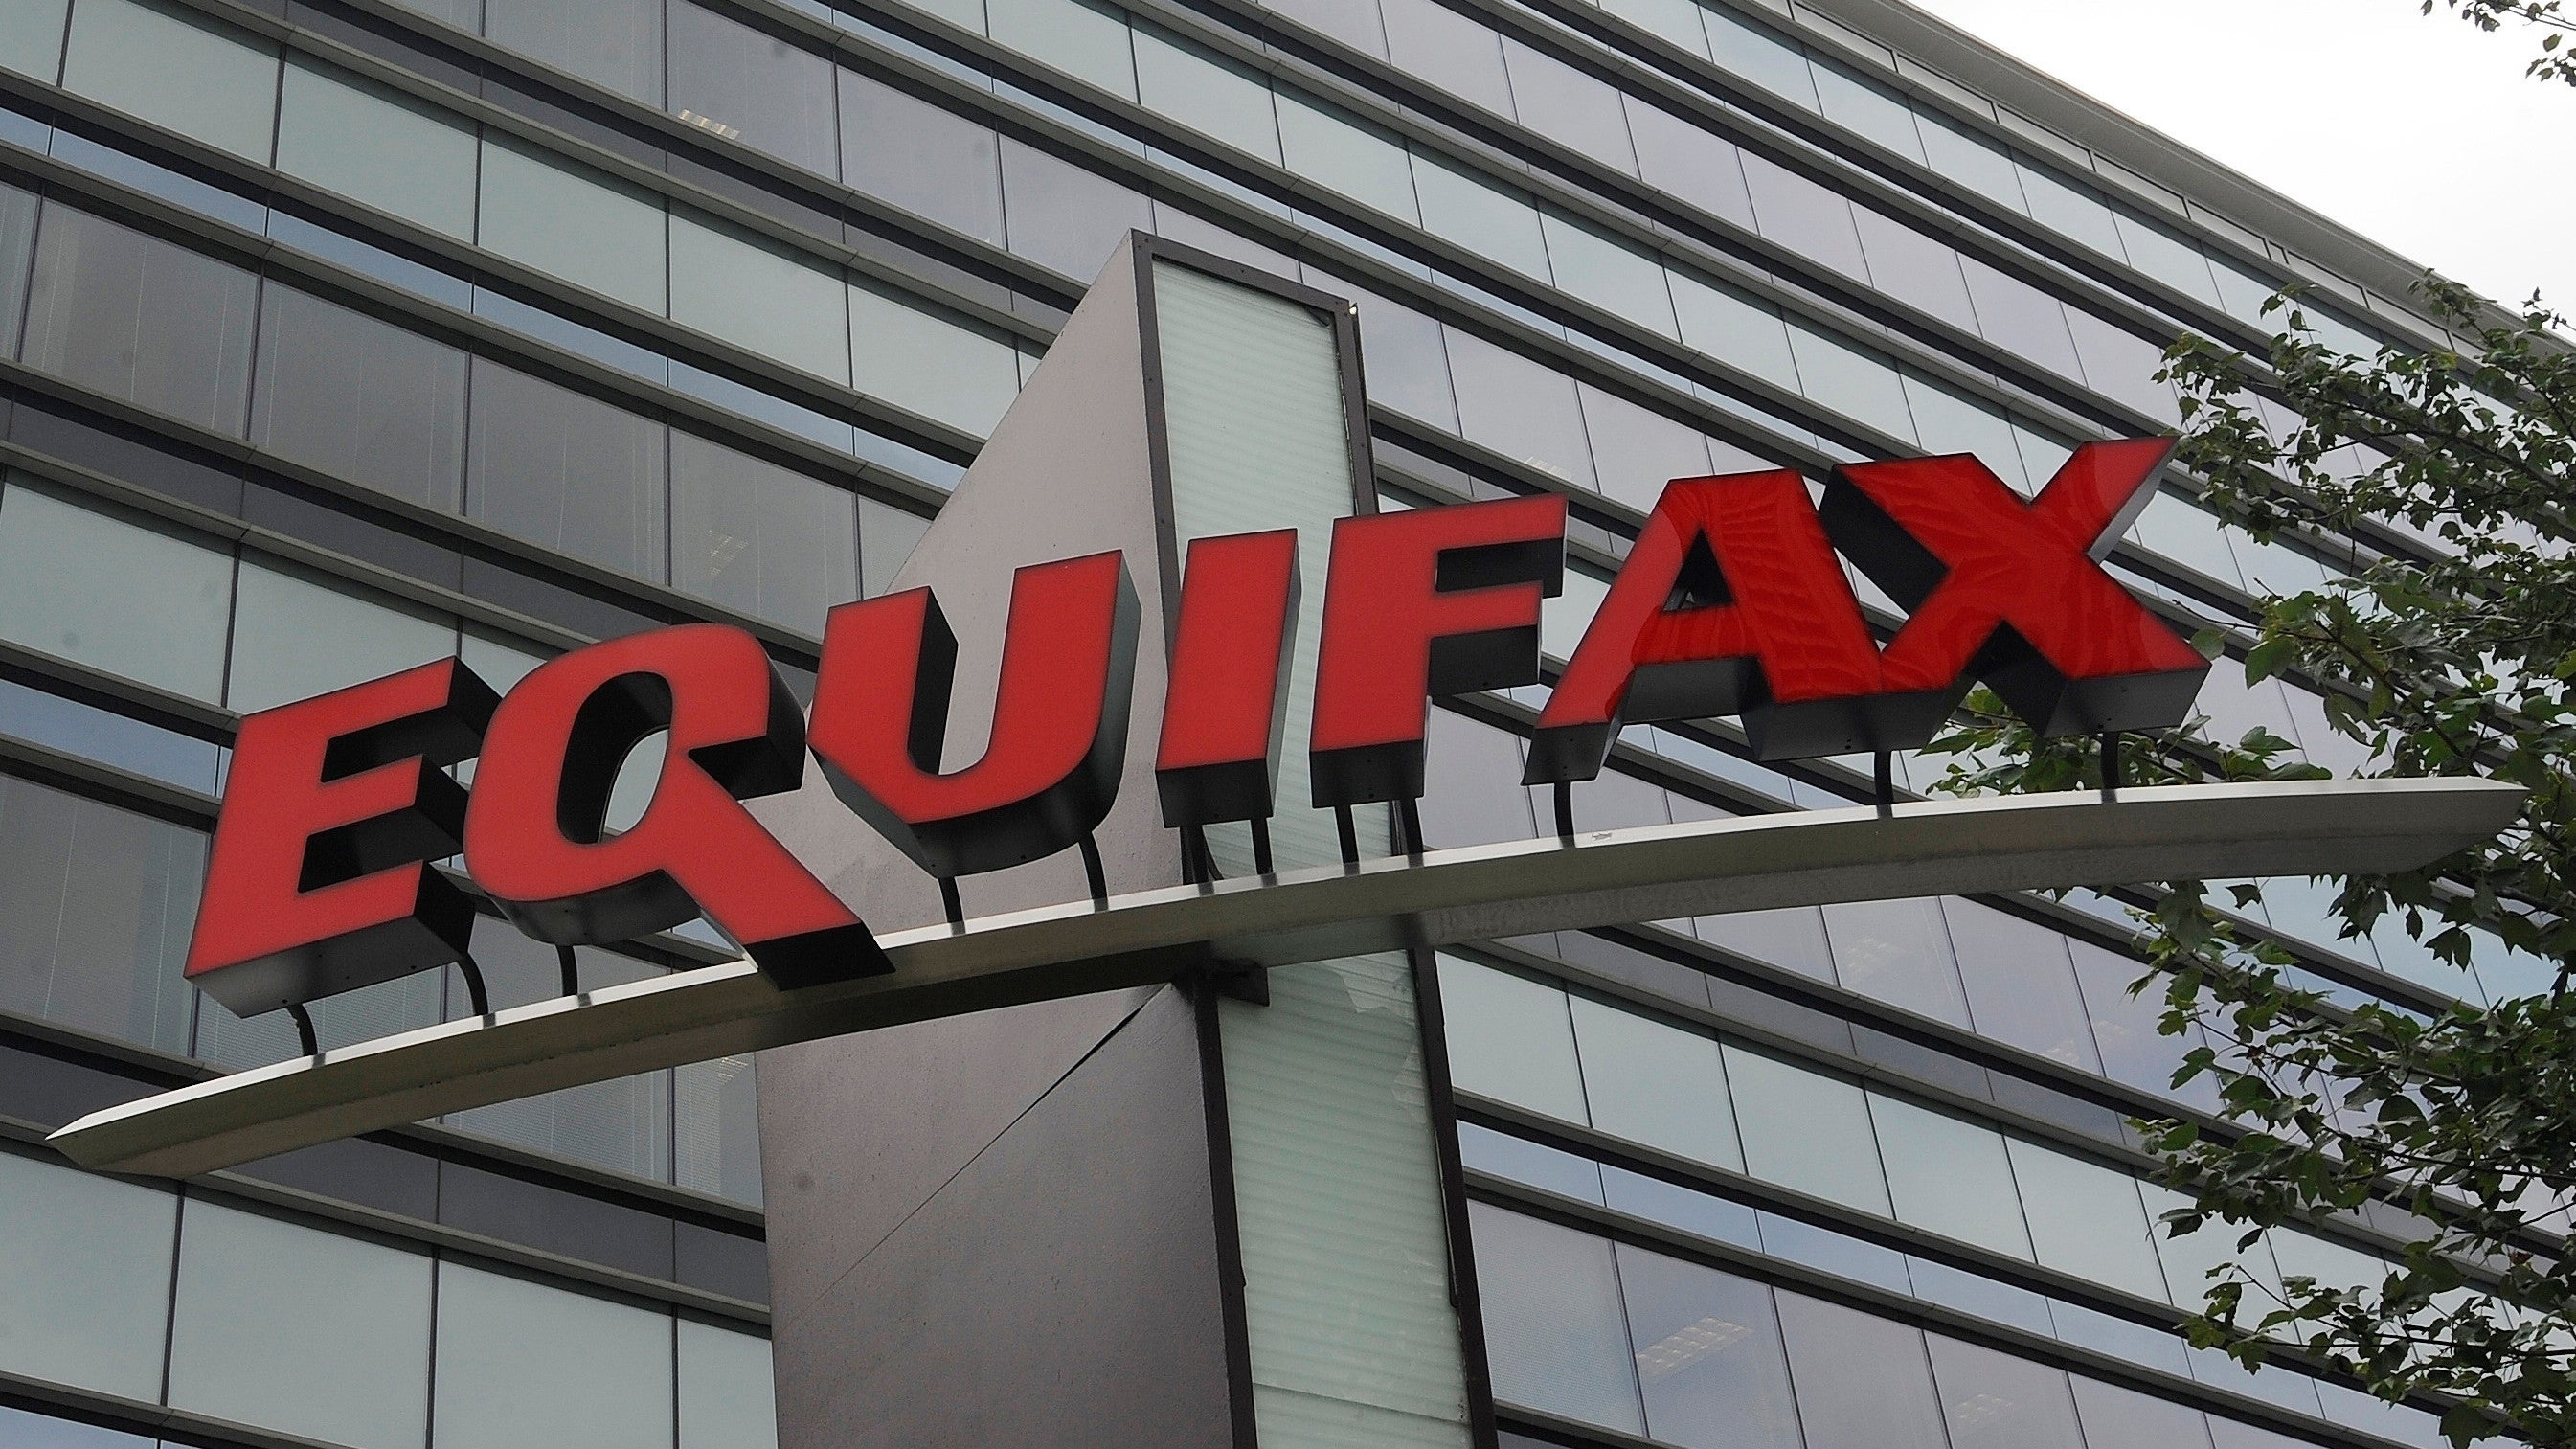 If There Was Any Question, You Definitely Aren't Getting $125 From Equifax